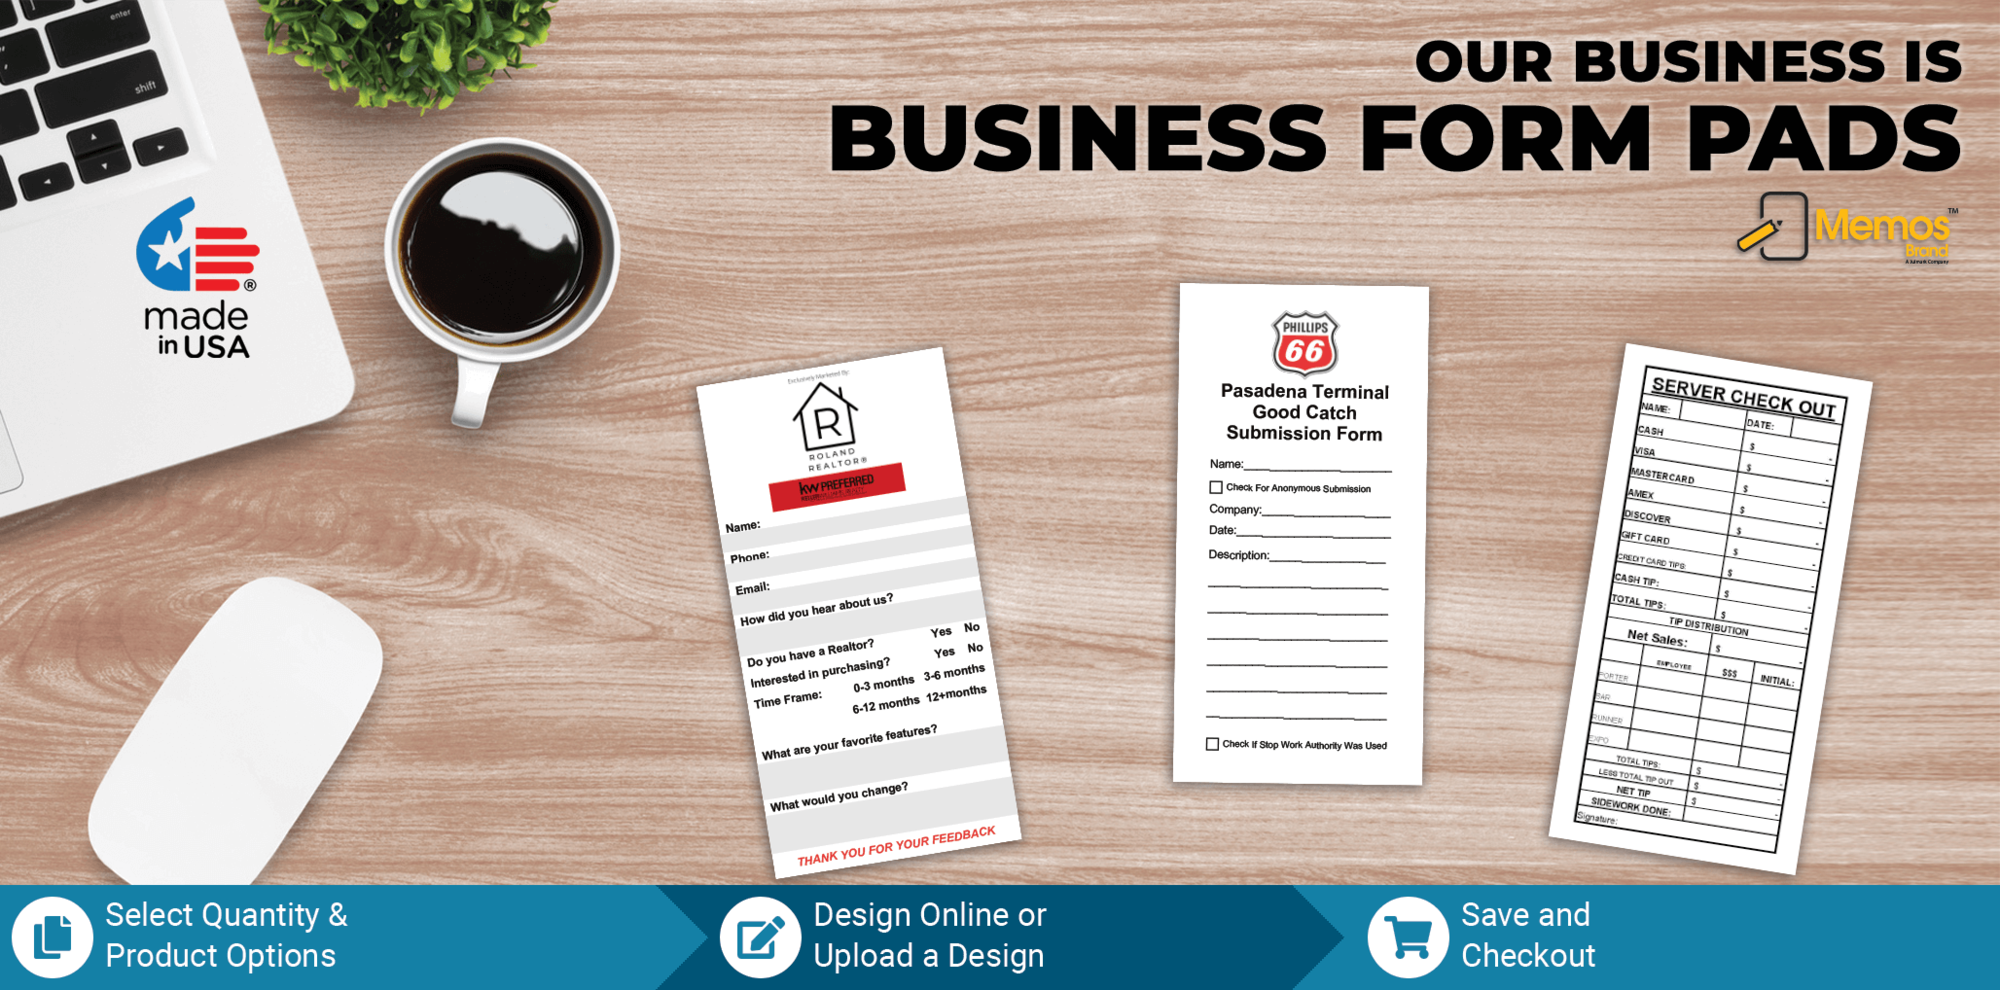 https://printpps.com/images/products_gallery_images/Banner_2x4-BusinessForm-Pads_ProdFeat_Cover.png